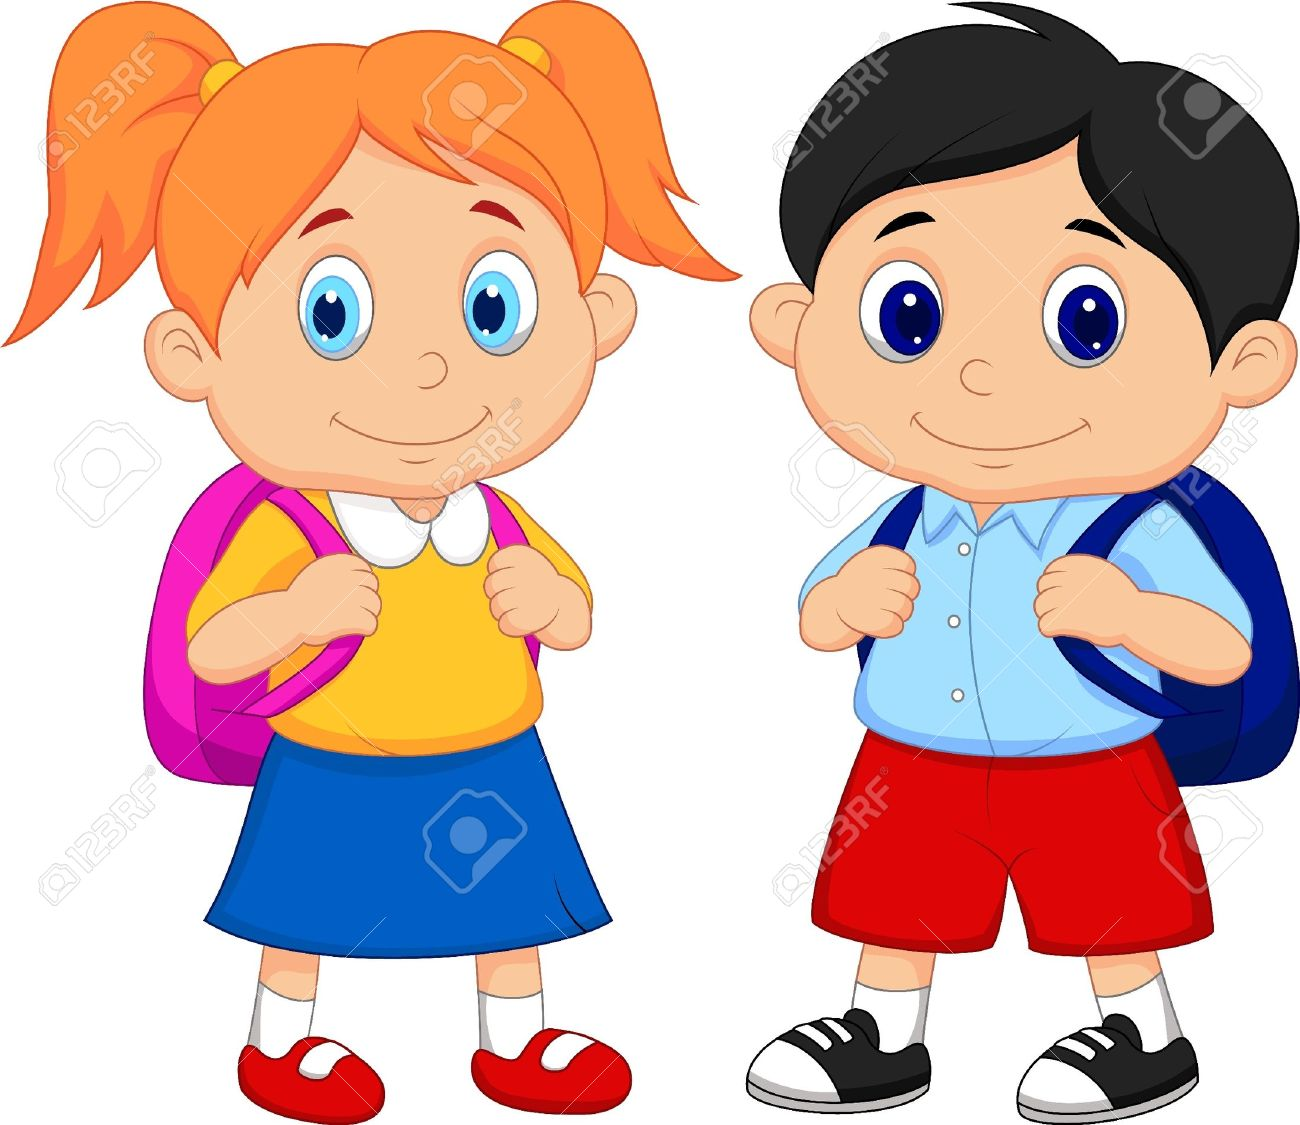 School student clipart 5 » Clipart Station.